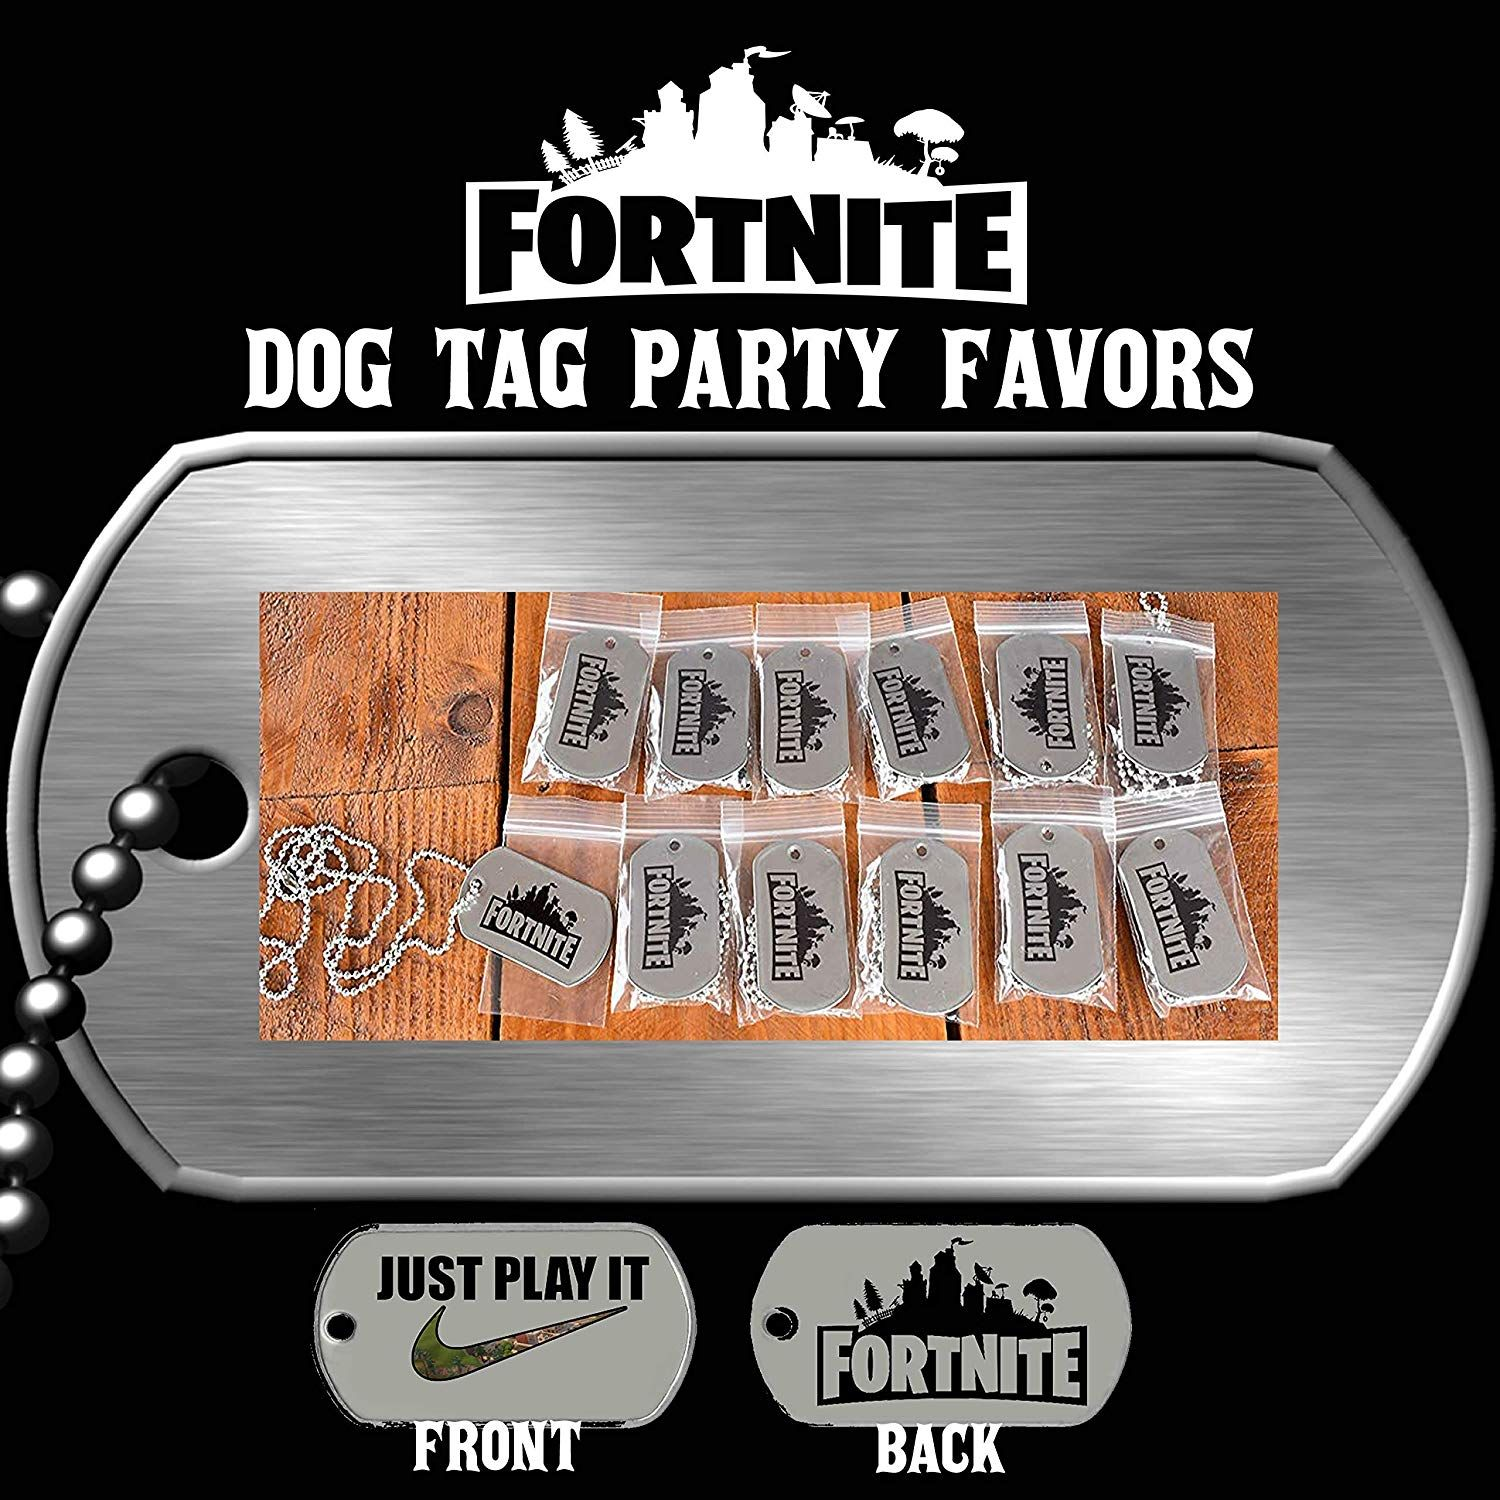 Fortnite Dog Tag Party Favors Fortnite Birthday Party Favor Fortnite Birthday Party Fortnite Birthday Party Favors Shopkins Party Decorations Shopkins Party